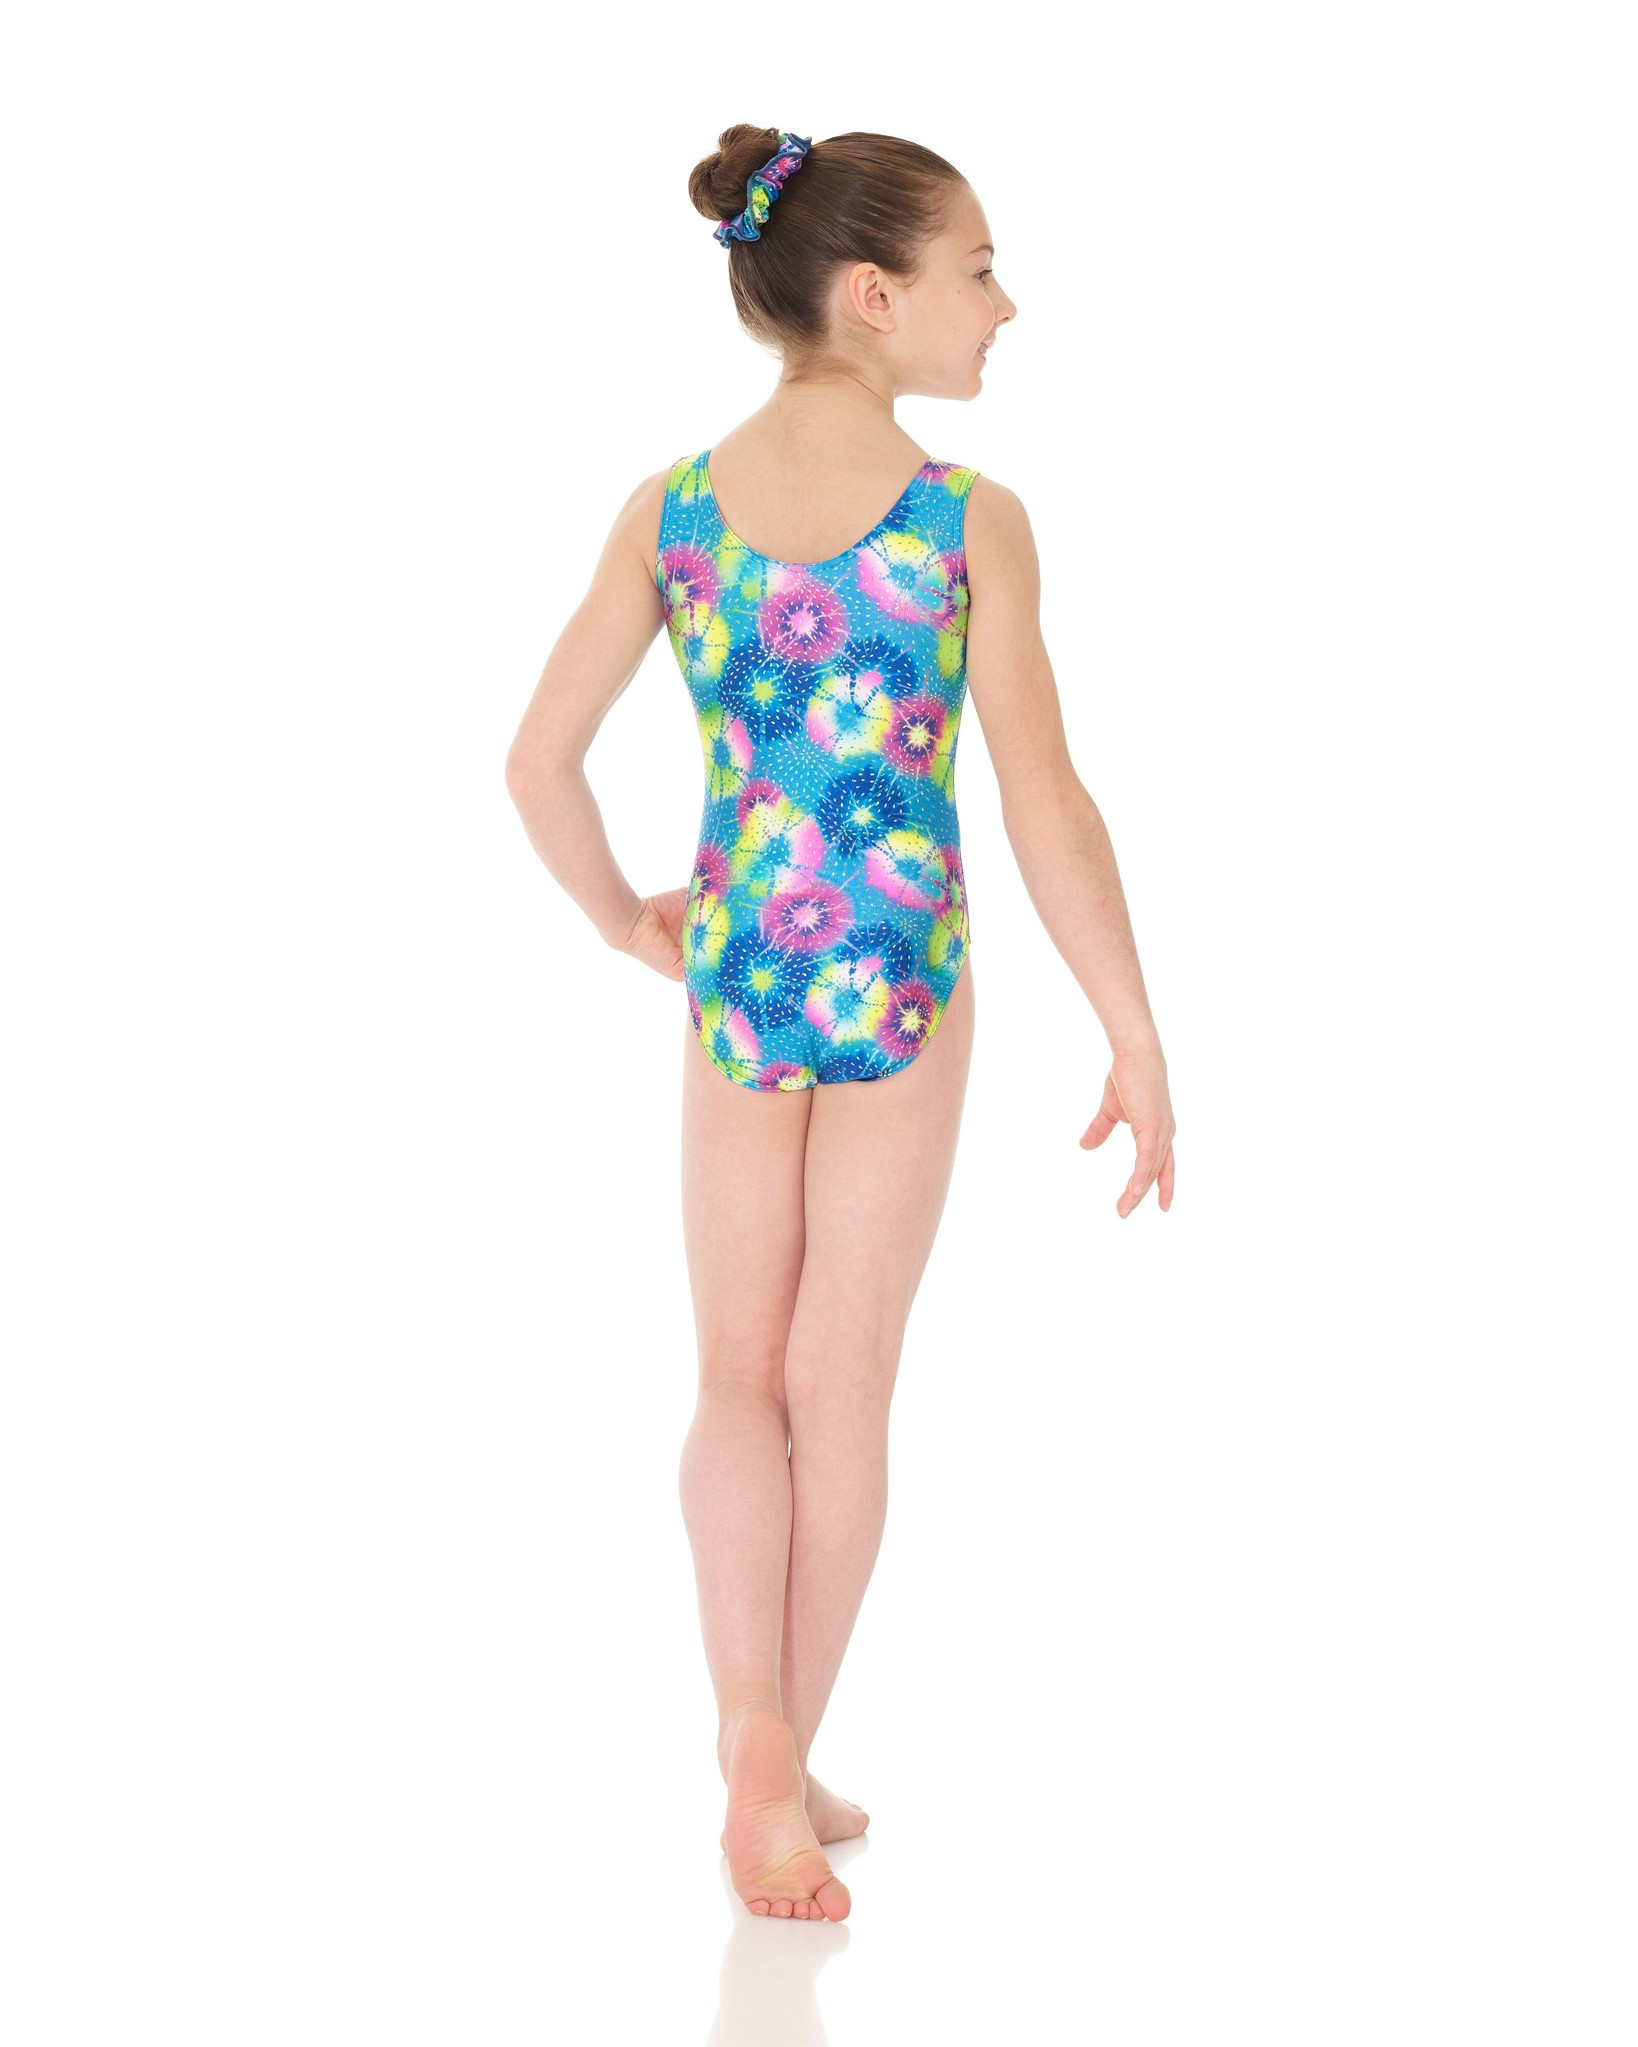 Mondor 27822-S2-Gym Tank Leotard-SEA URCHINS